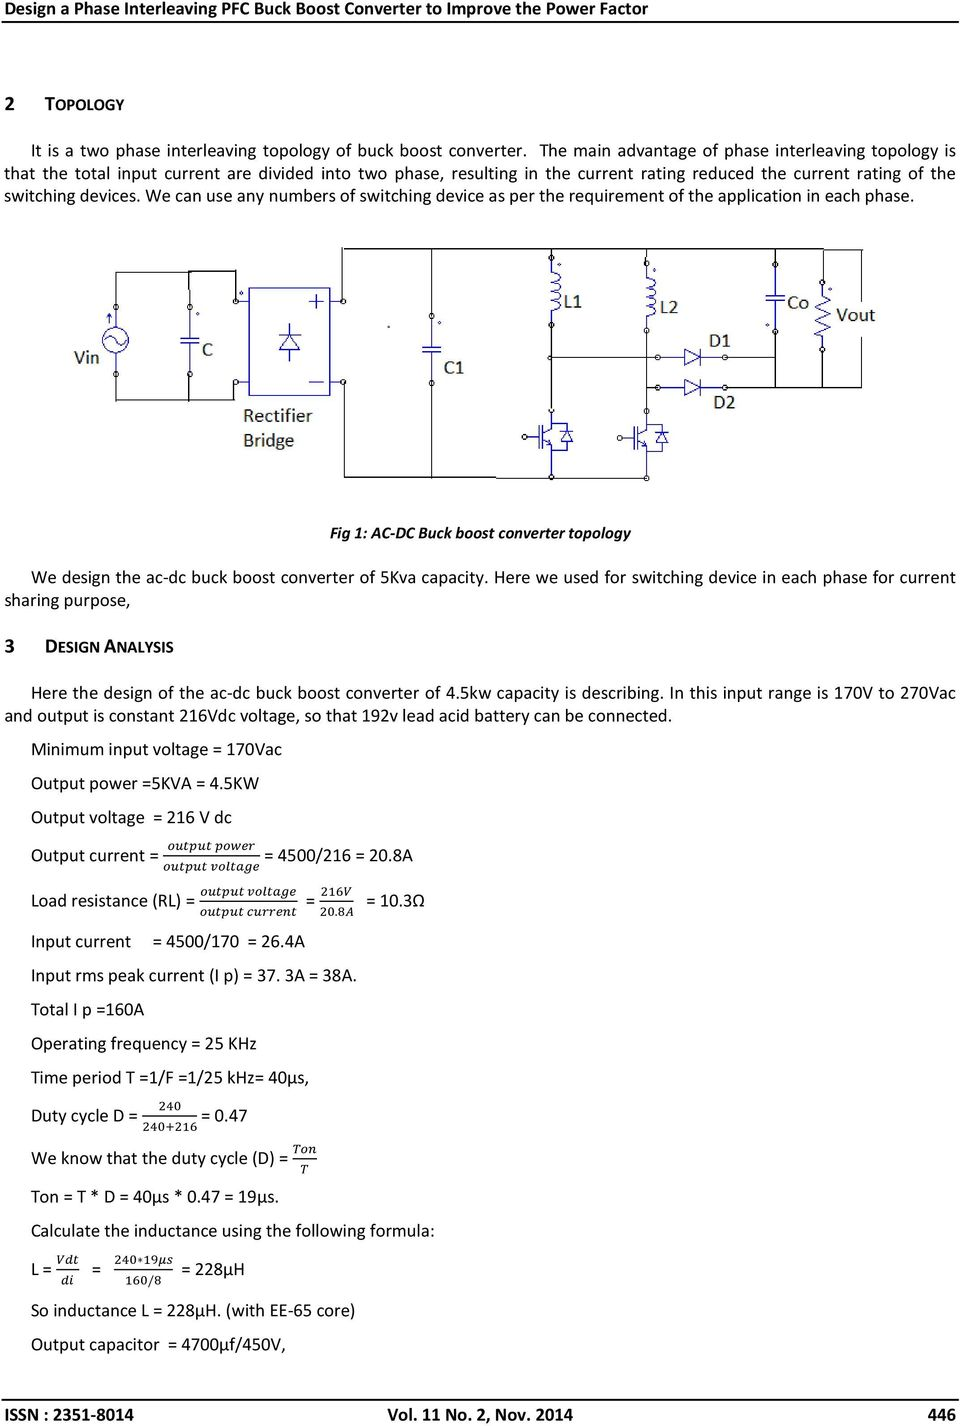 We can use any numbers of switching device as per the requirement of the application in each phase.